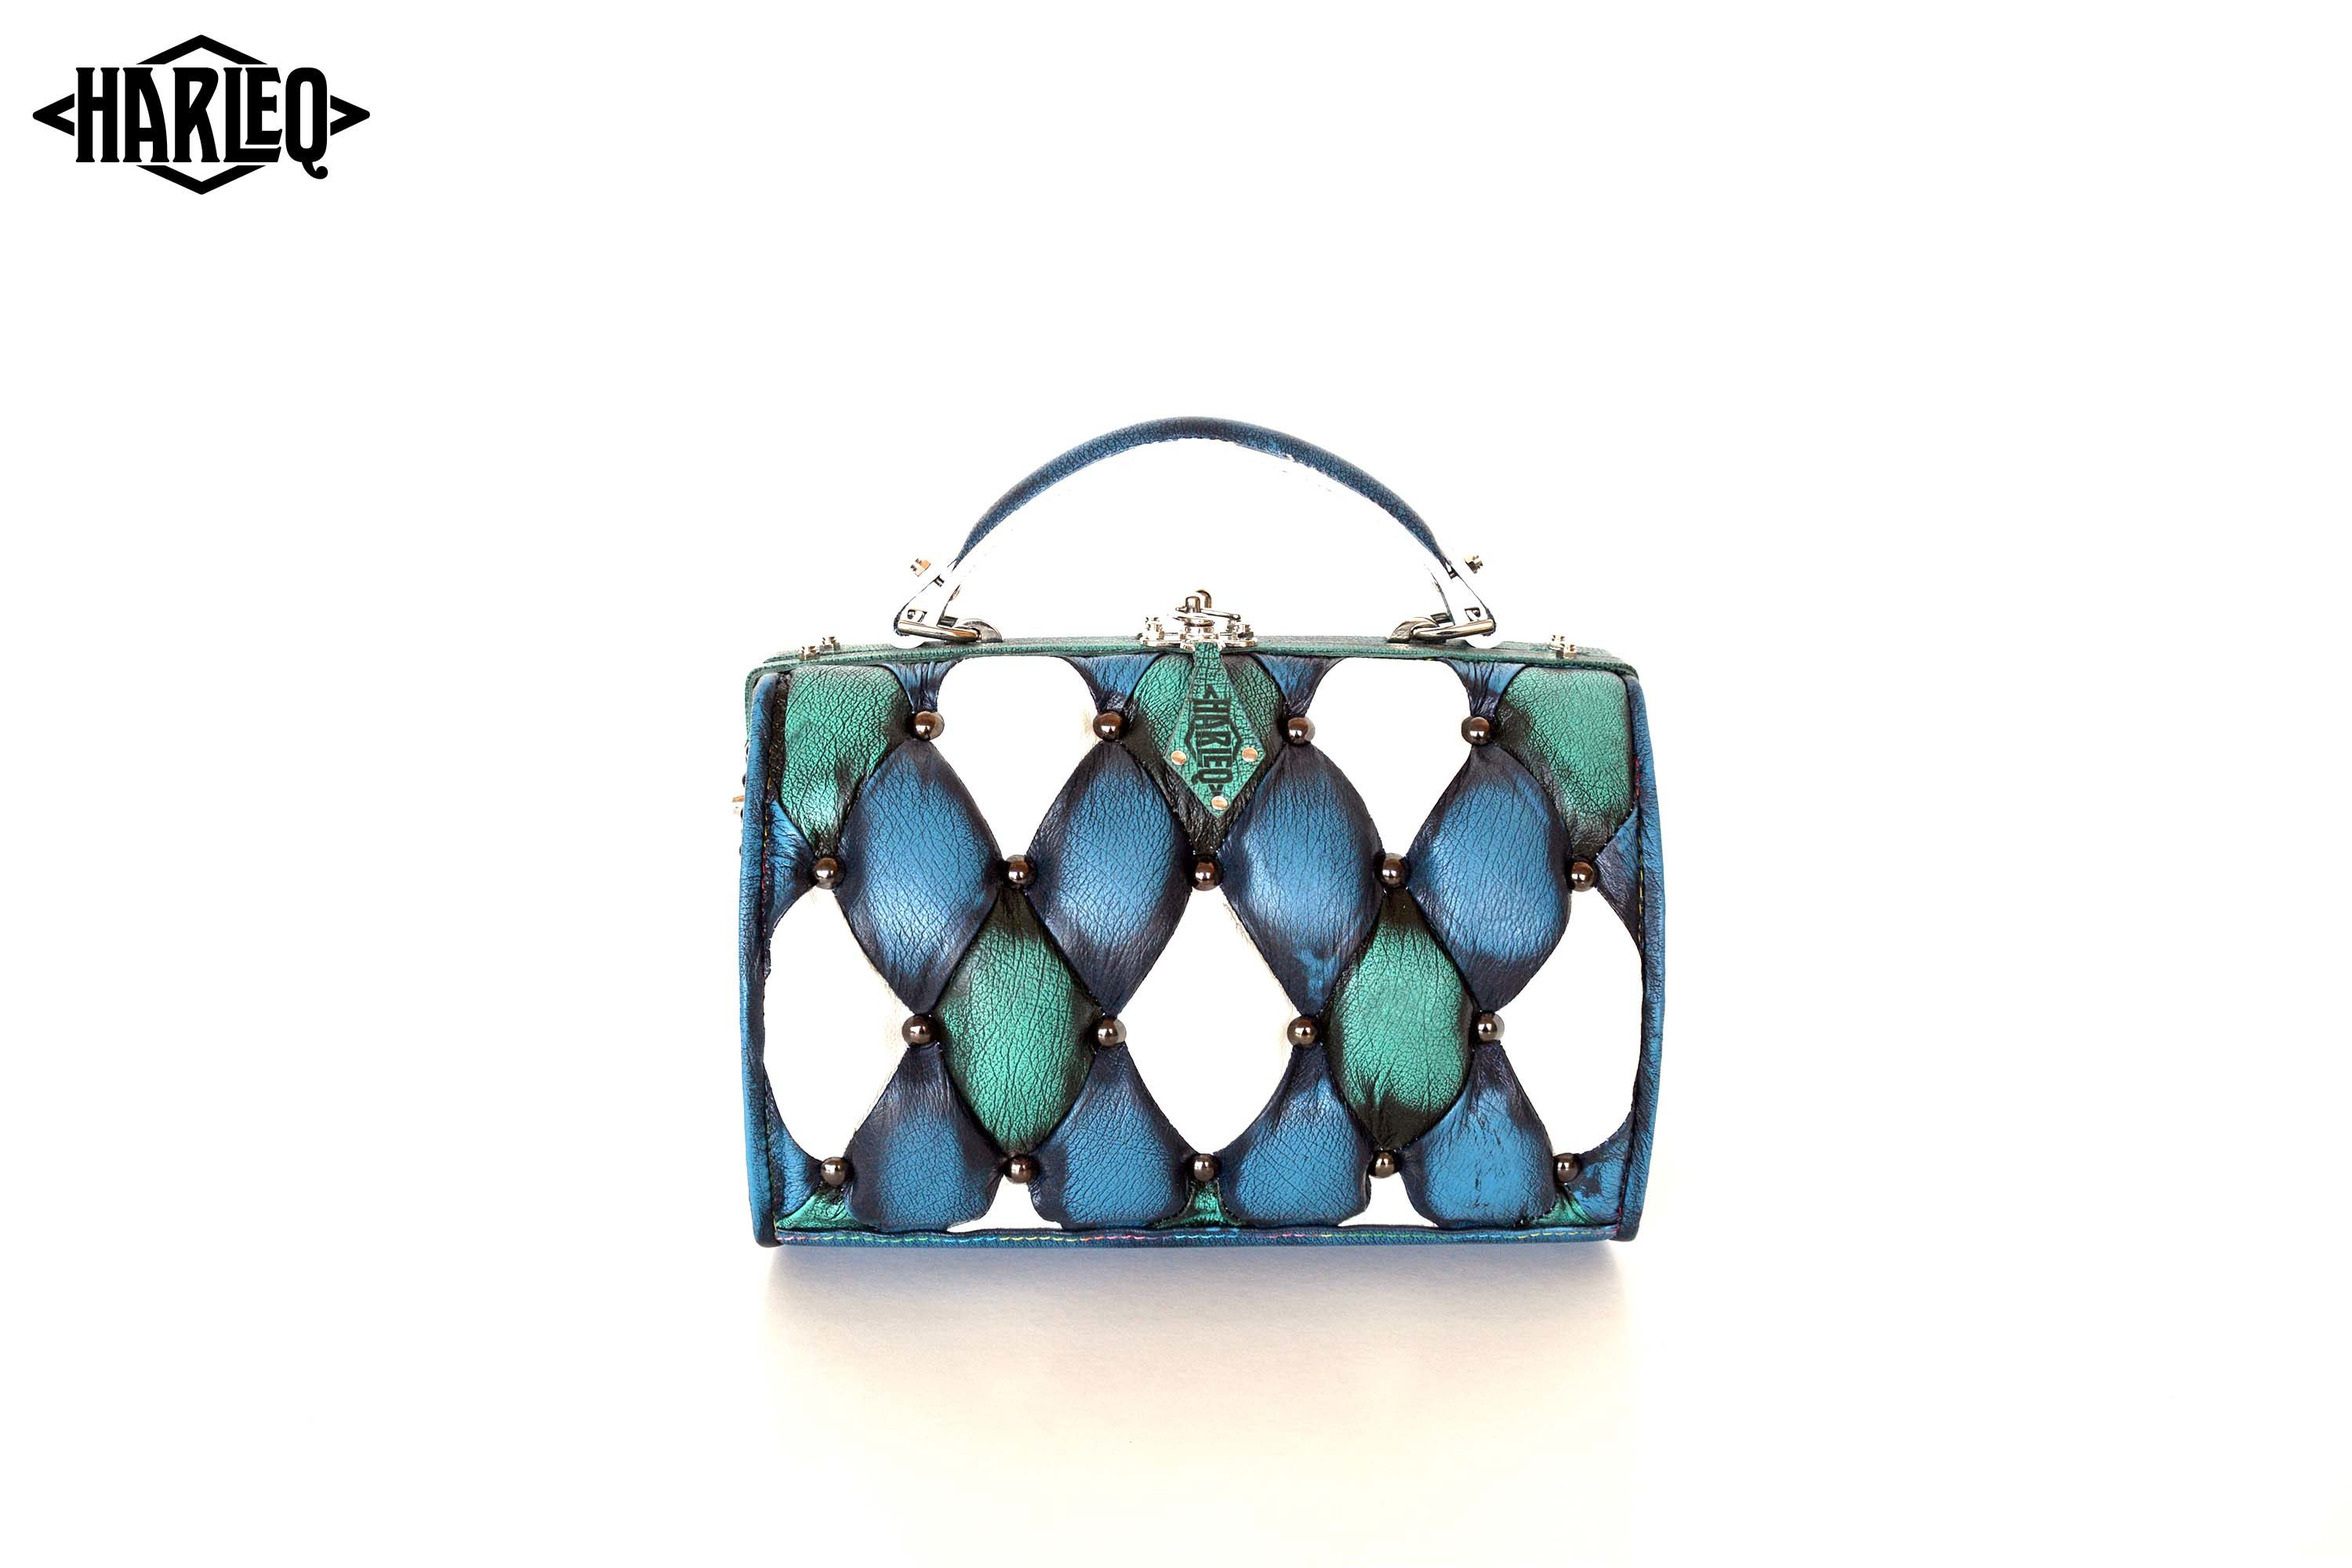 Harleq Trunk Turquoise Leather 3